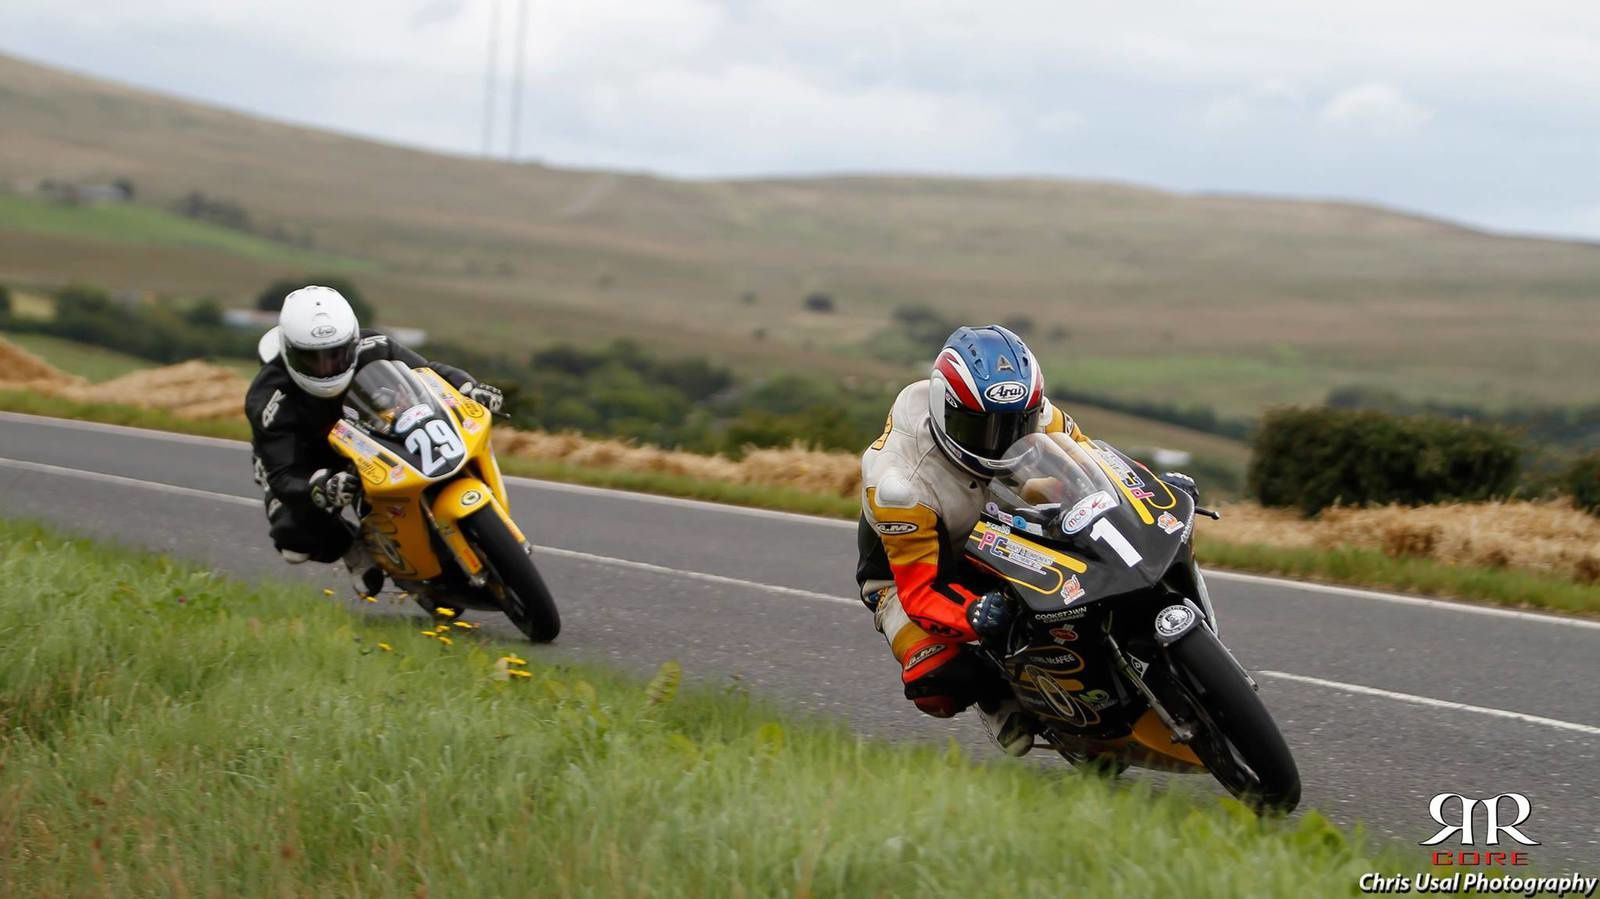 [Road Racing] UGP 2016 - Page 4 Ob_f1820d_13925644-10155161660598642-53403203722